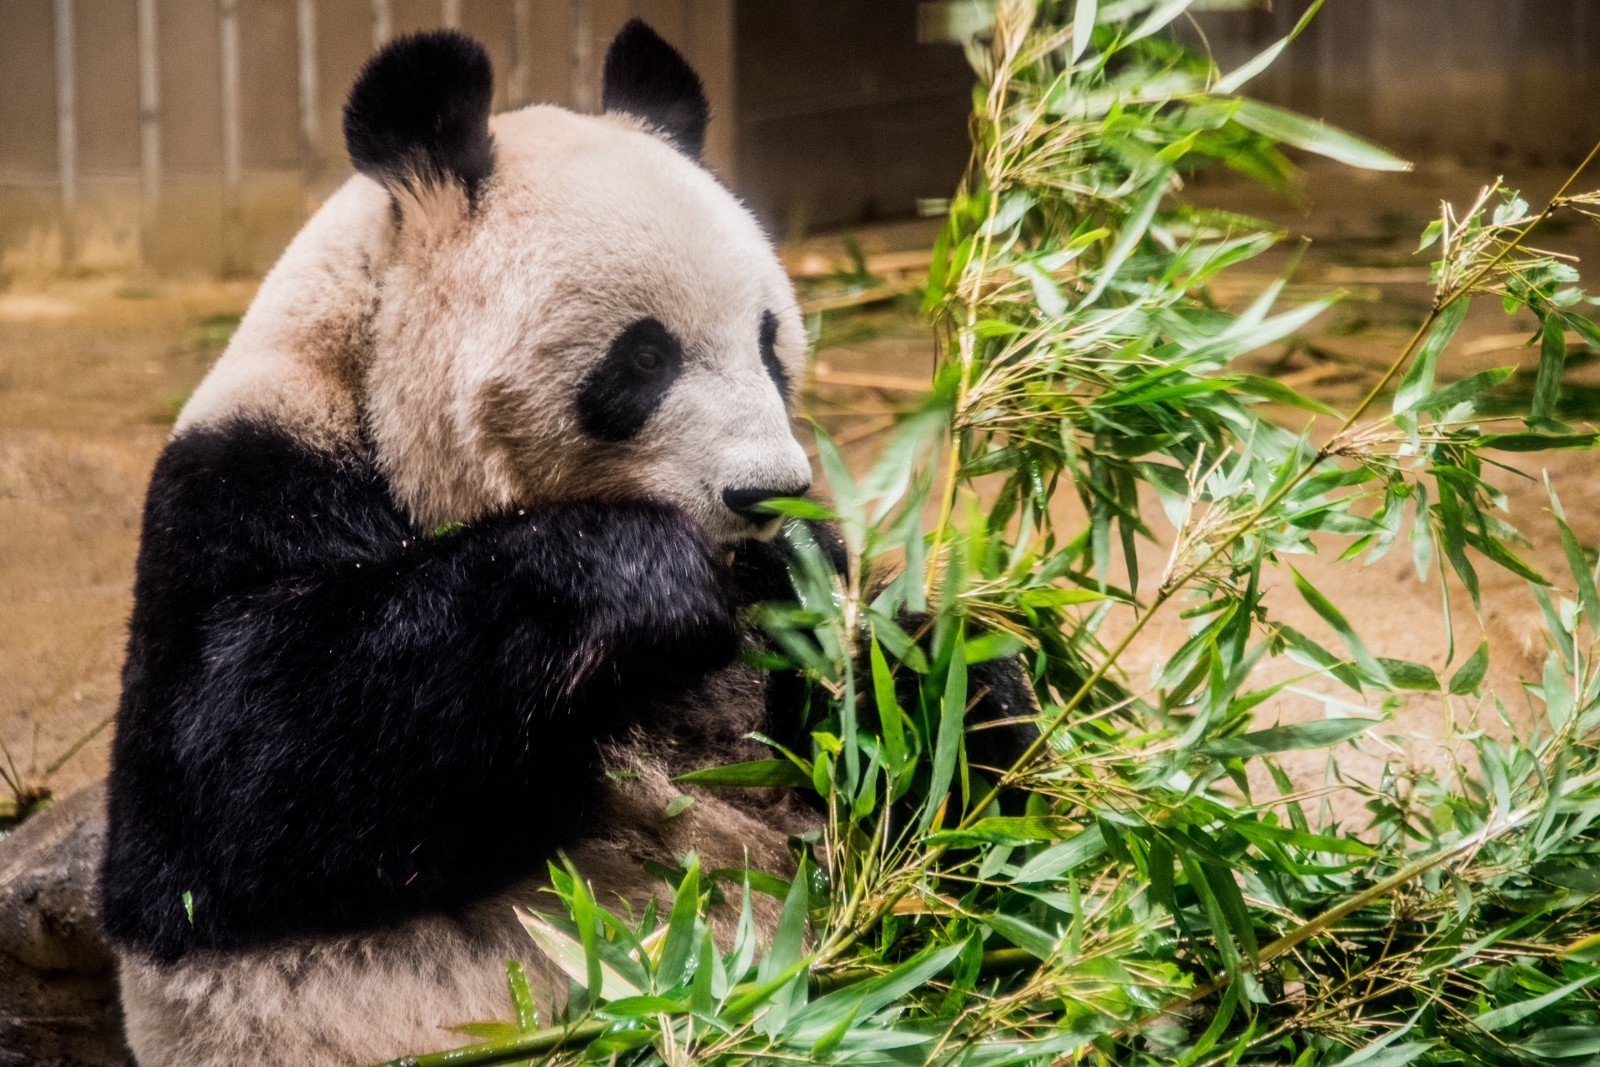 A panda eating bamboo leaves